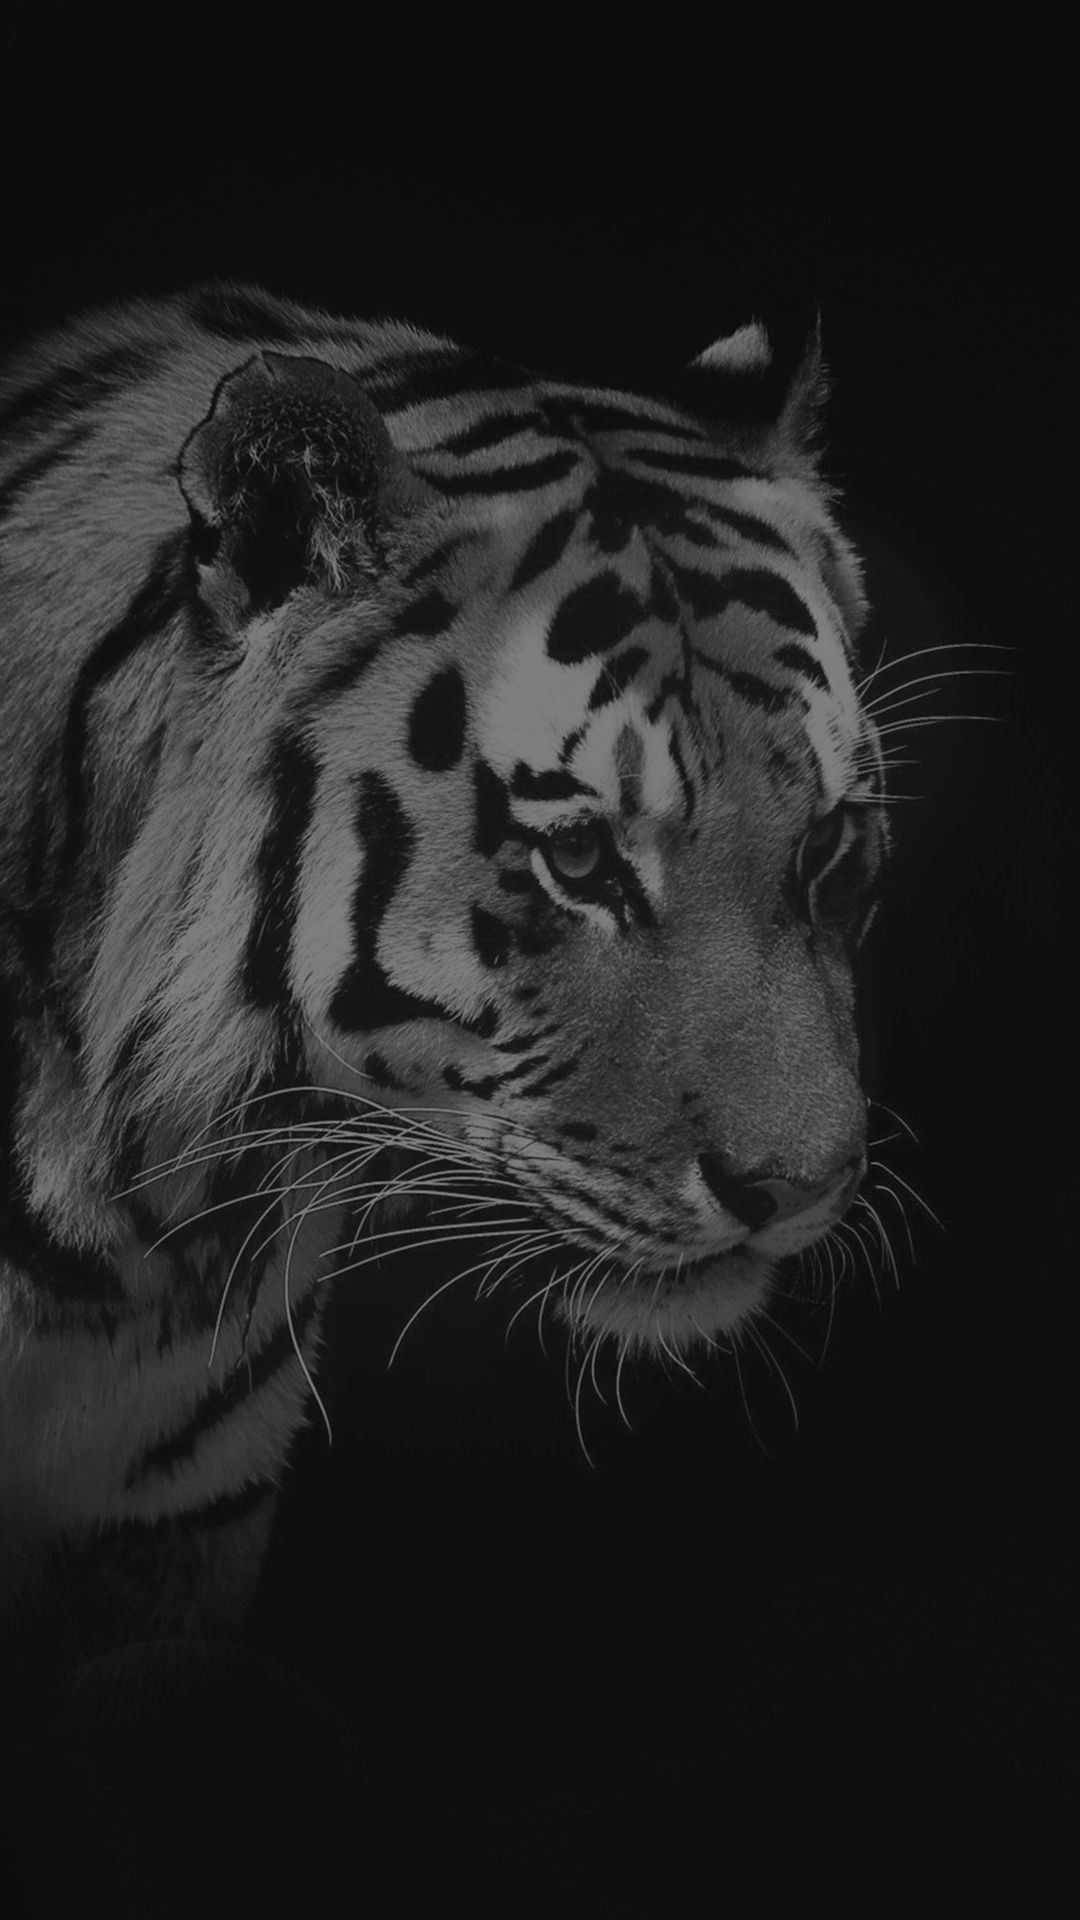 Tiger Dark Animal Love Nature Iphone 8 Wallpapers Tiger